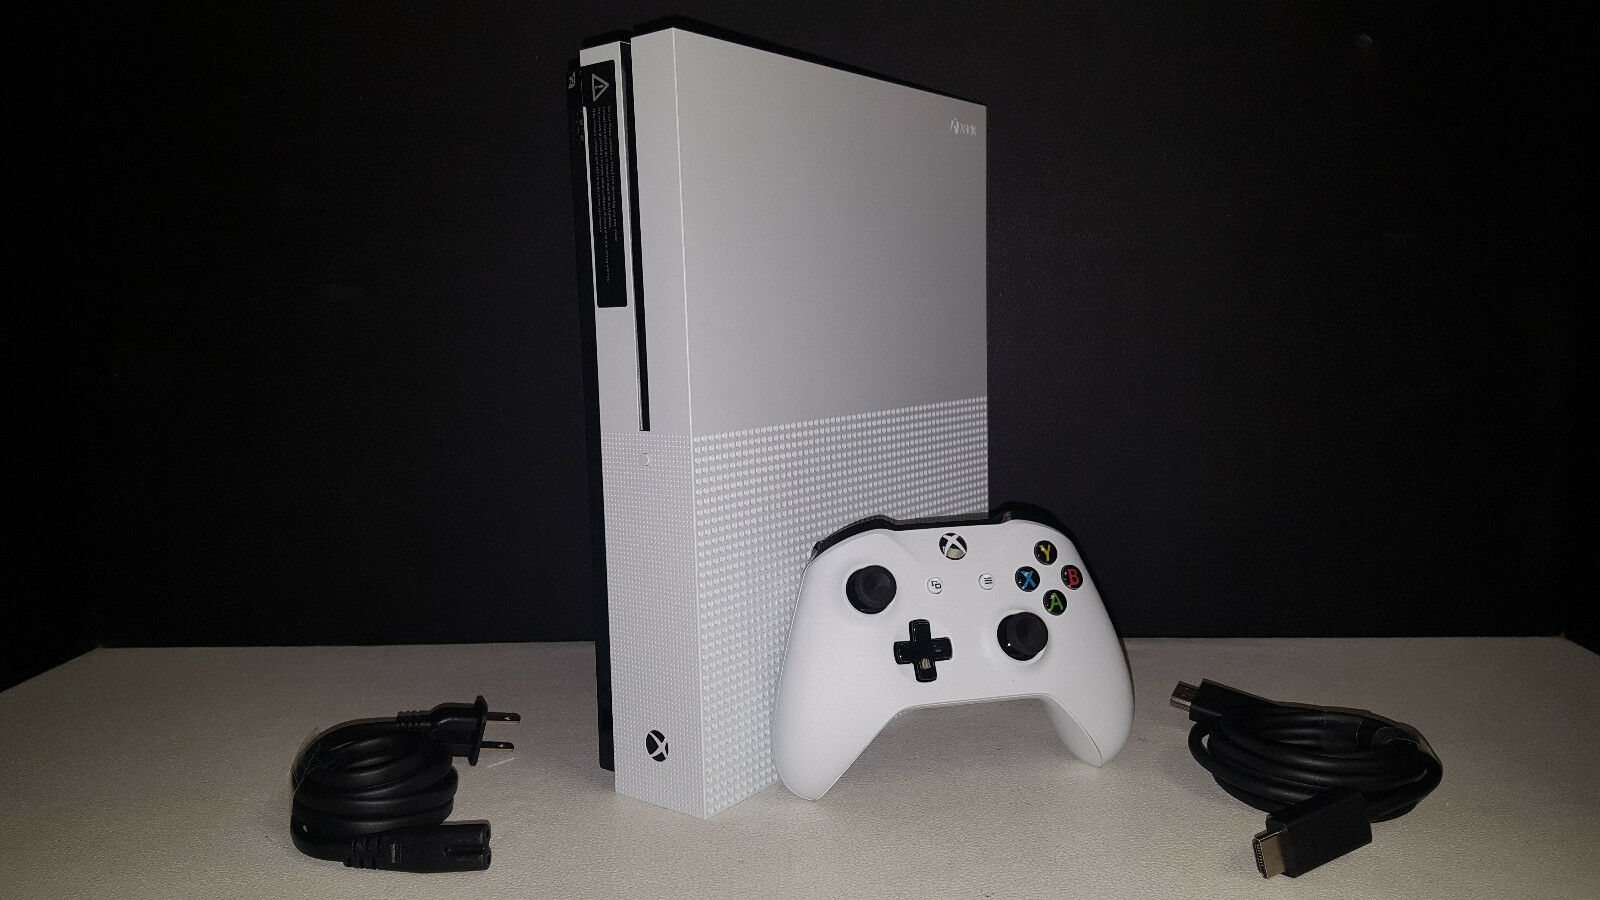 $259.99 - Microsoft Xbox One S 2 TB Console w/ accessories!